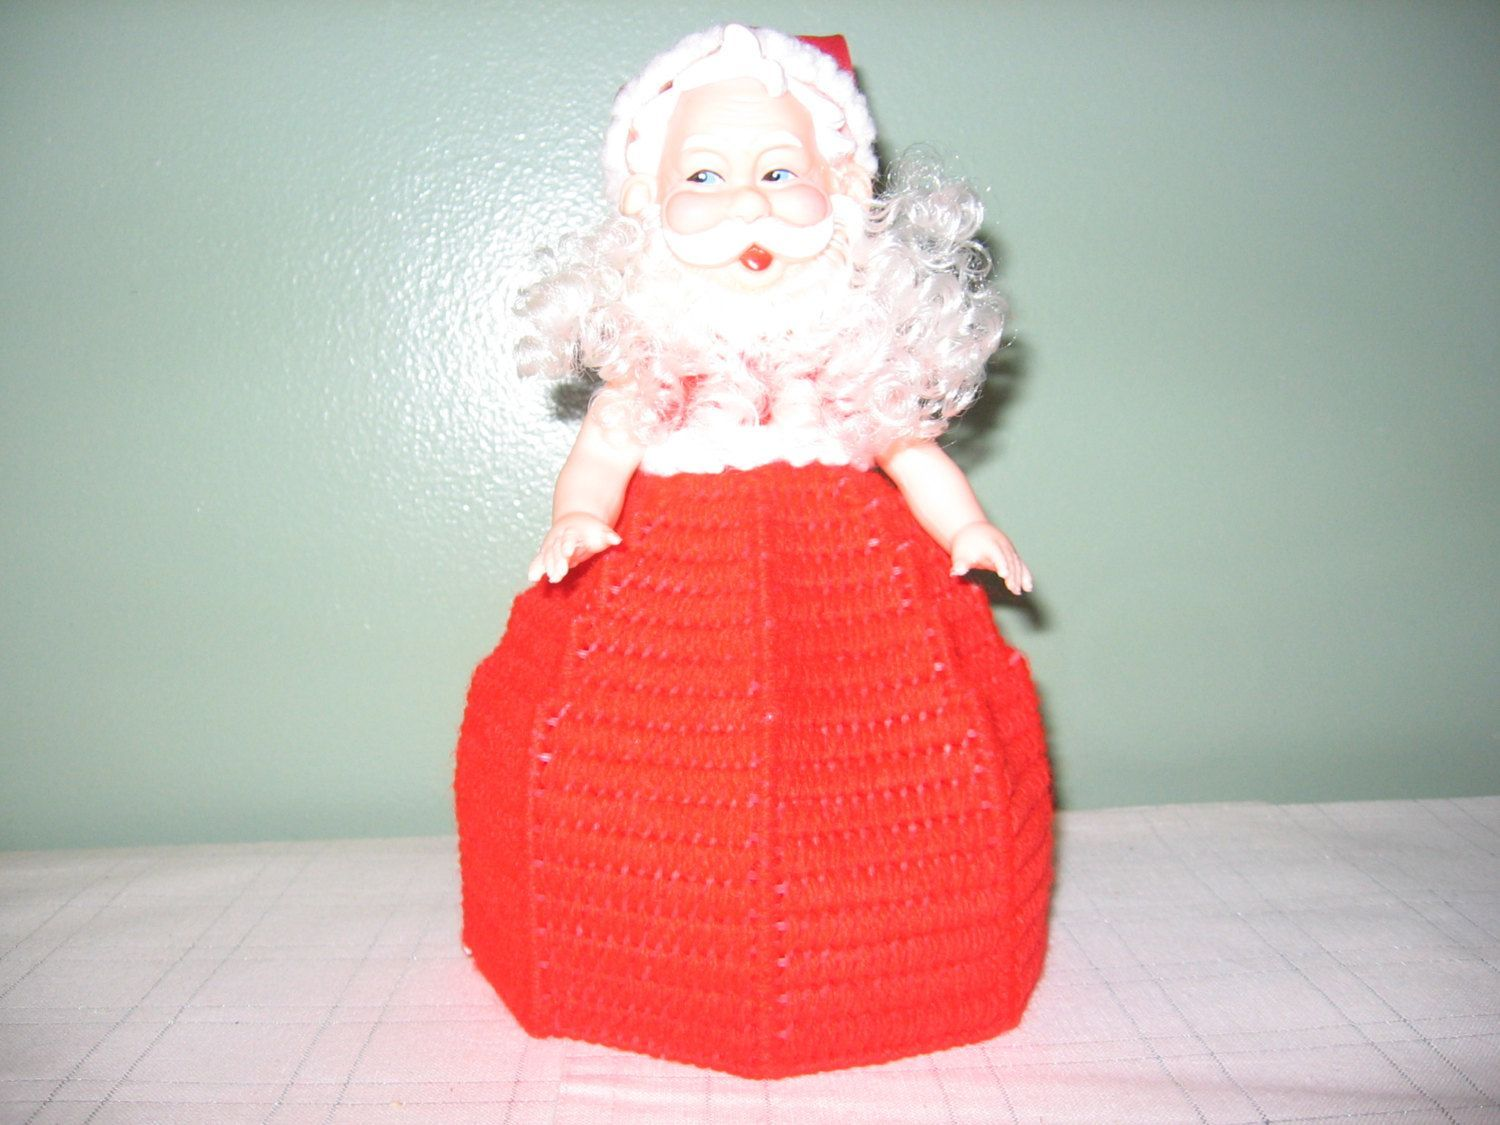 2 - Santa Claus Collectible Dolls/ Air Freshner Dolls - Christmas in July Sale - get them now before they are gone!! by CreationsbyAMJ on Etsy #airfreshnerdolls 2 - Santa Claus Collectible Dolls/ Air Freshner Dolls - Christmas in July Sale - get them now before they are gone!! by CreationsbyAMJ on Etsy #airfreshnerdolls